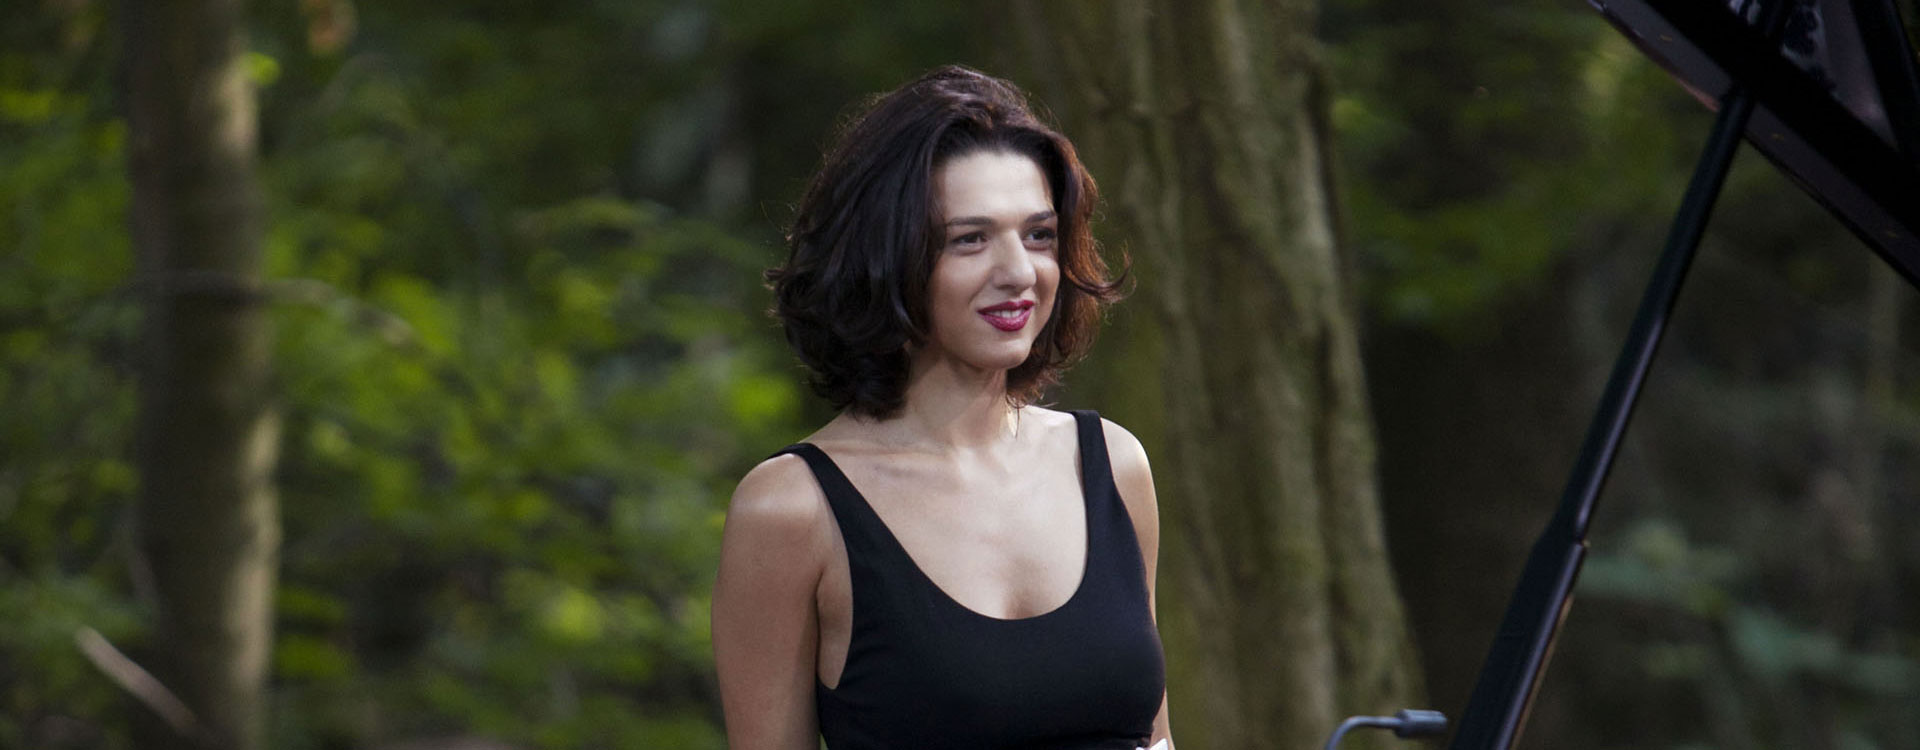 Concert khatia buniatishvili together with Review Lexus Ct200 H likewise Detail2 cat est hifi Mp3 Mp4 puis rubrique est wh min puis ref est hf10033907 additionally 10 moreover 1224409297. on touch stereo